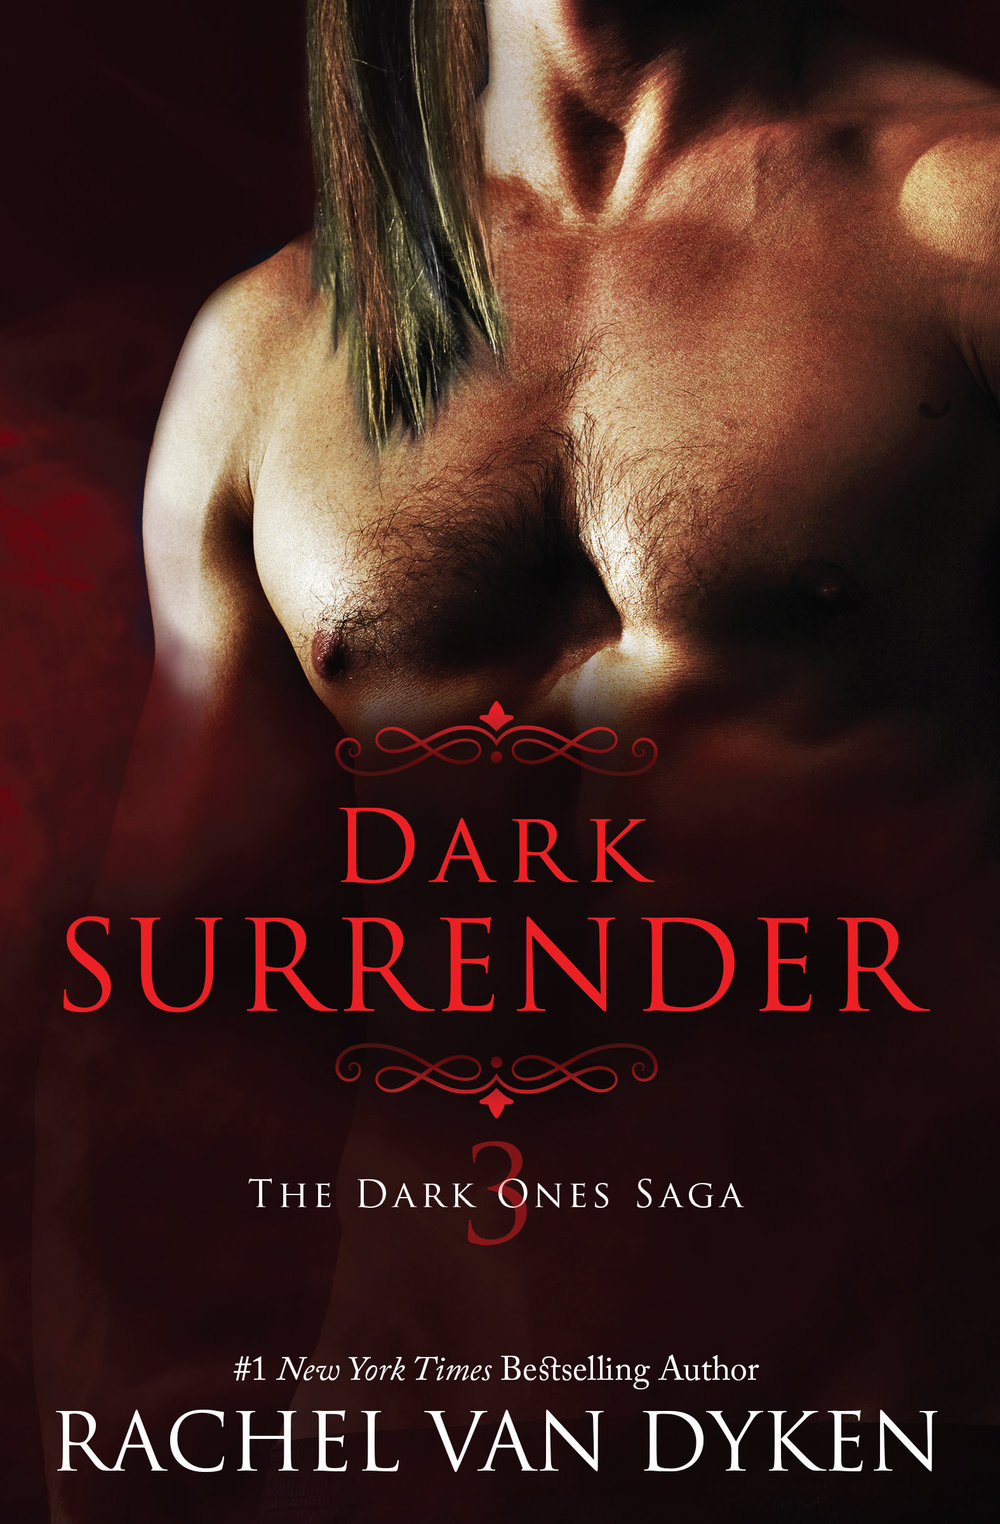 DarkSurrender_eBook_HiRes.jpg